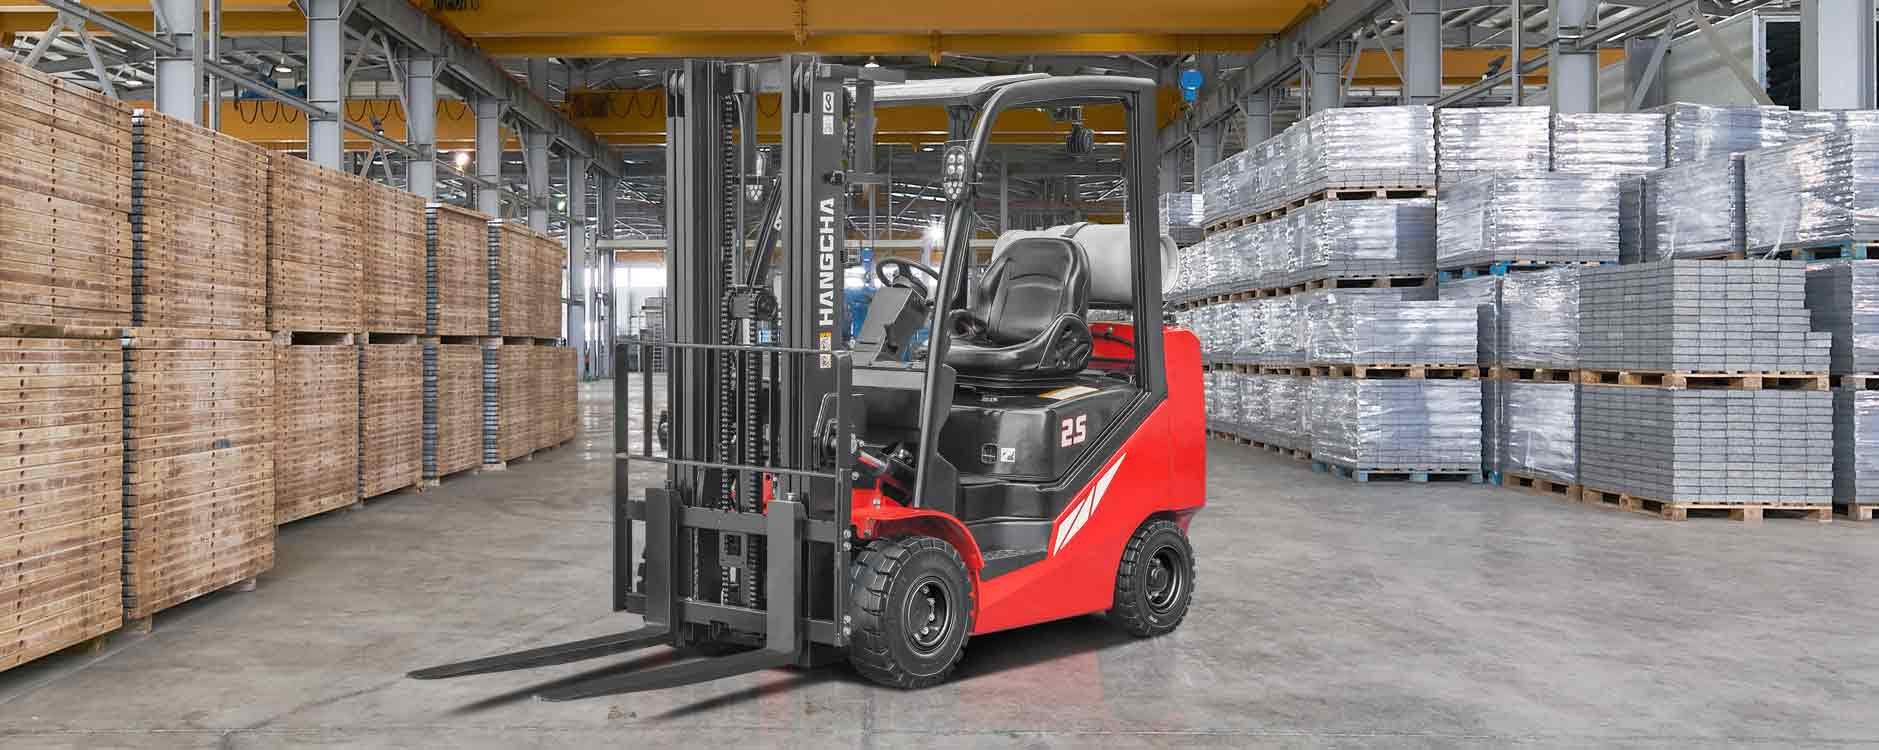 Hangcha FP25CP - IC Pneumatic Forklift 5,000 lbs